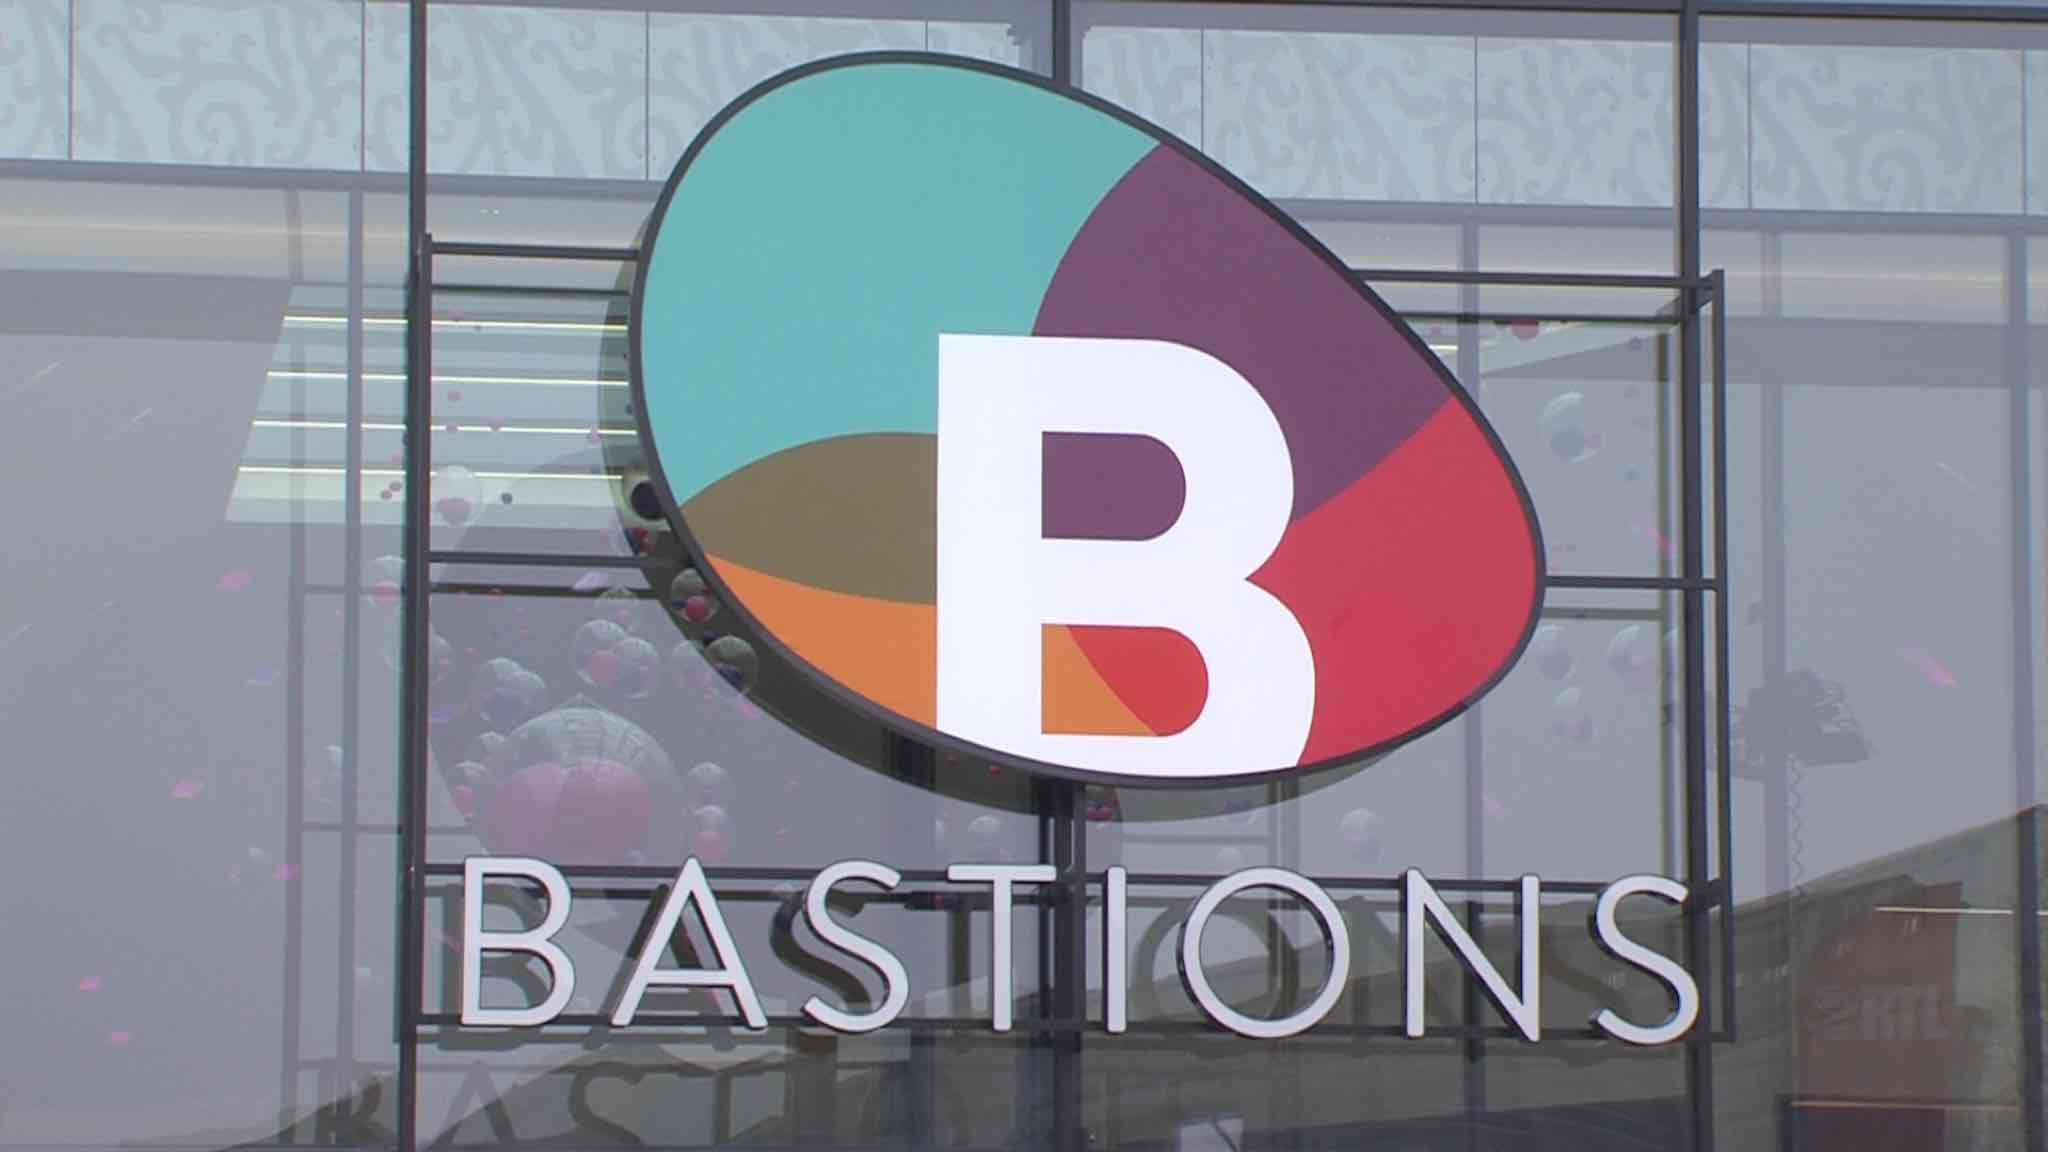 L'extension des Bastions à Tournai